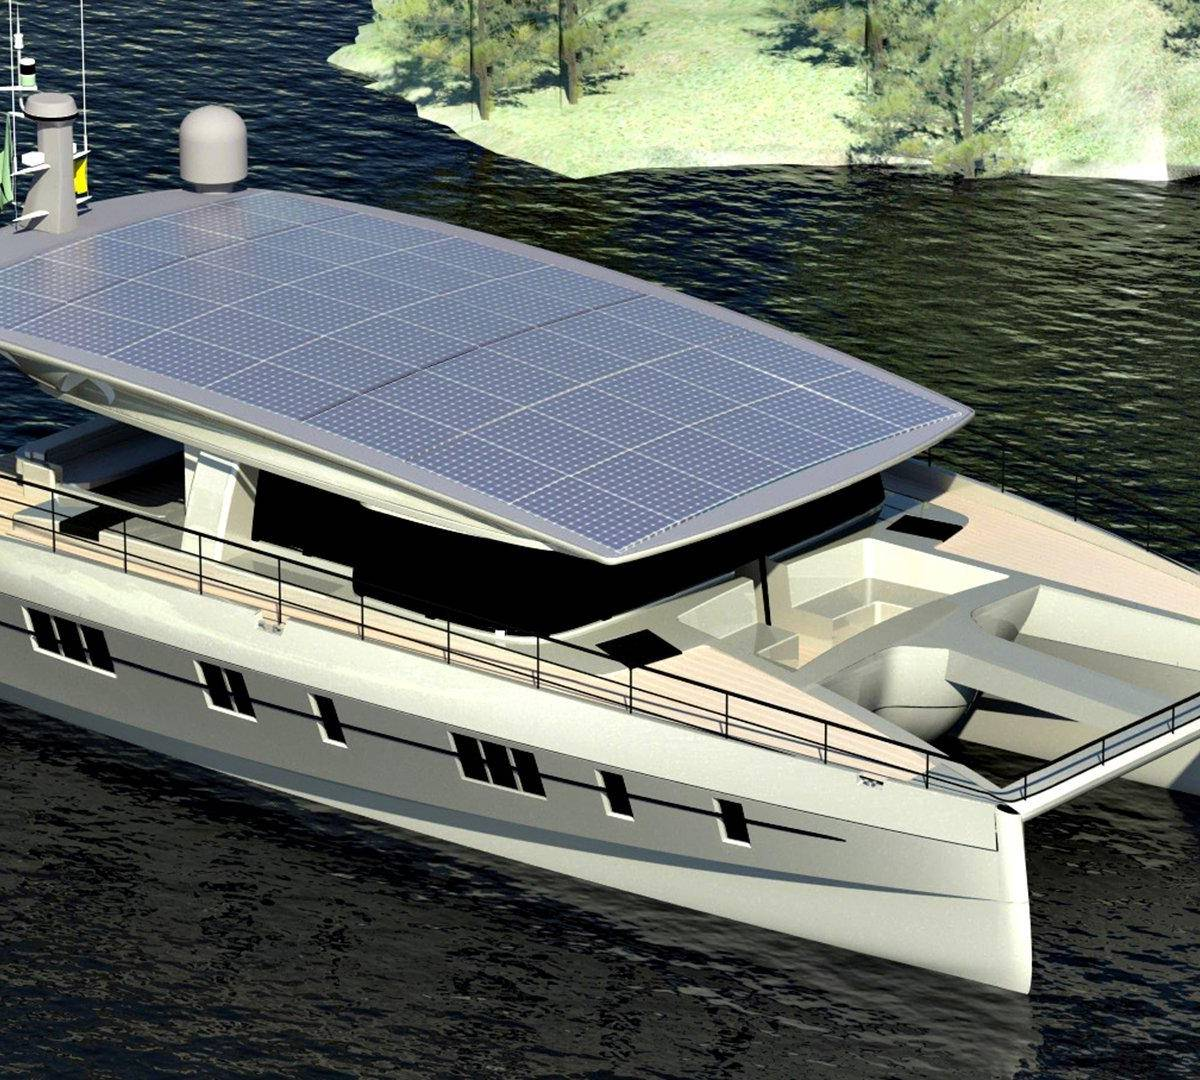 Yacht Lithium Battery 1.1MWH 1000KW Output Power Manufacturers, Yacht Lithium Battery 1.1MWH 1000KW Output Power Factory, Supply Yacht Lithium Battery 1.1MWH 1000KW Output Power